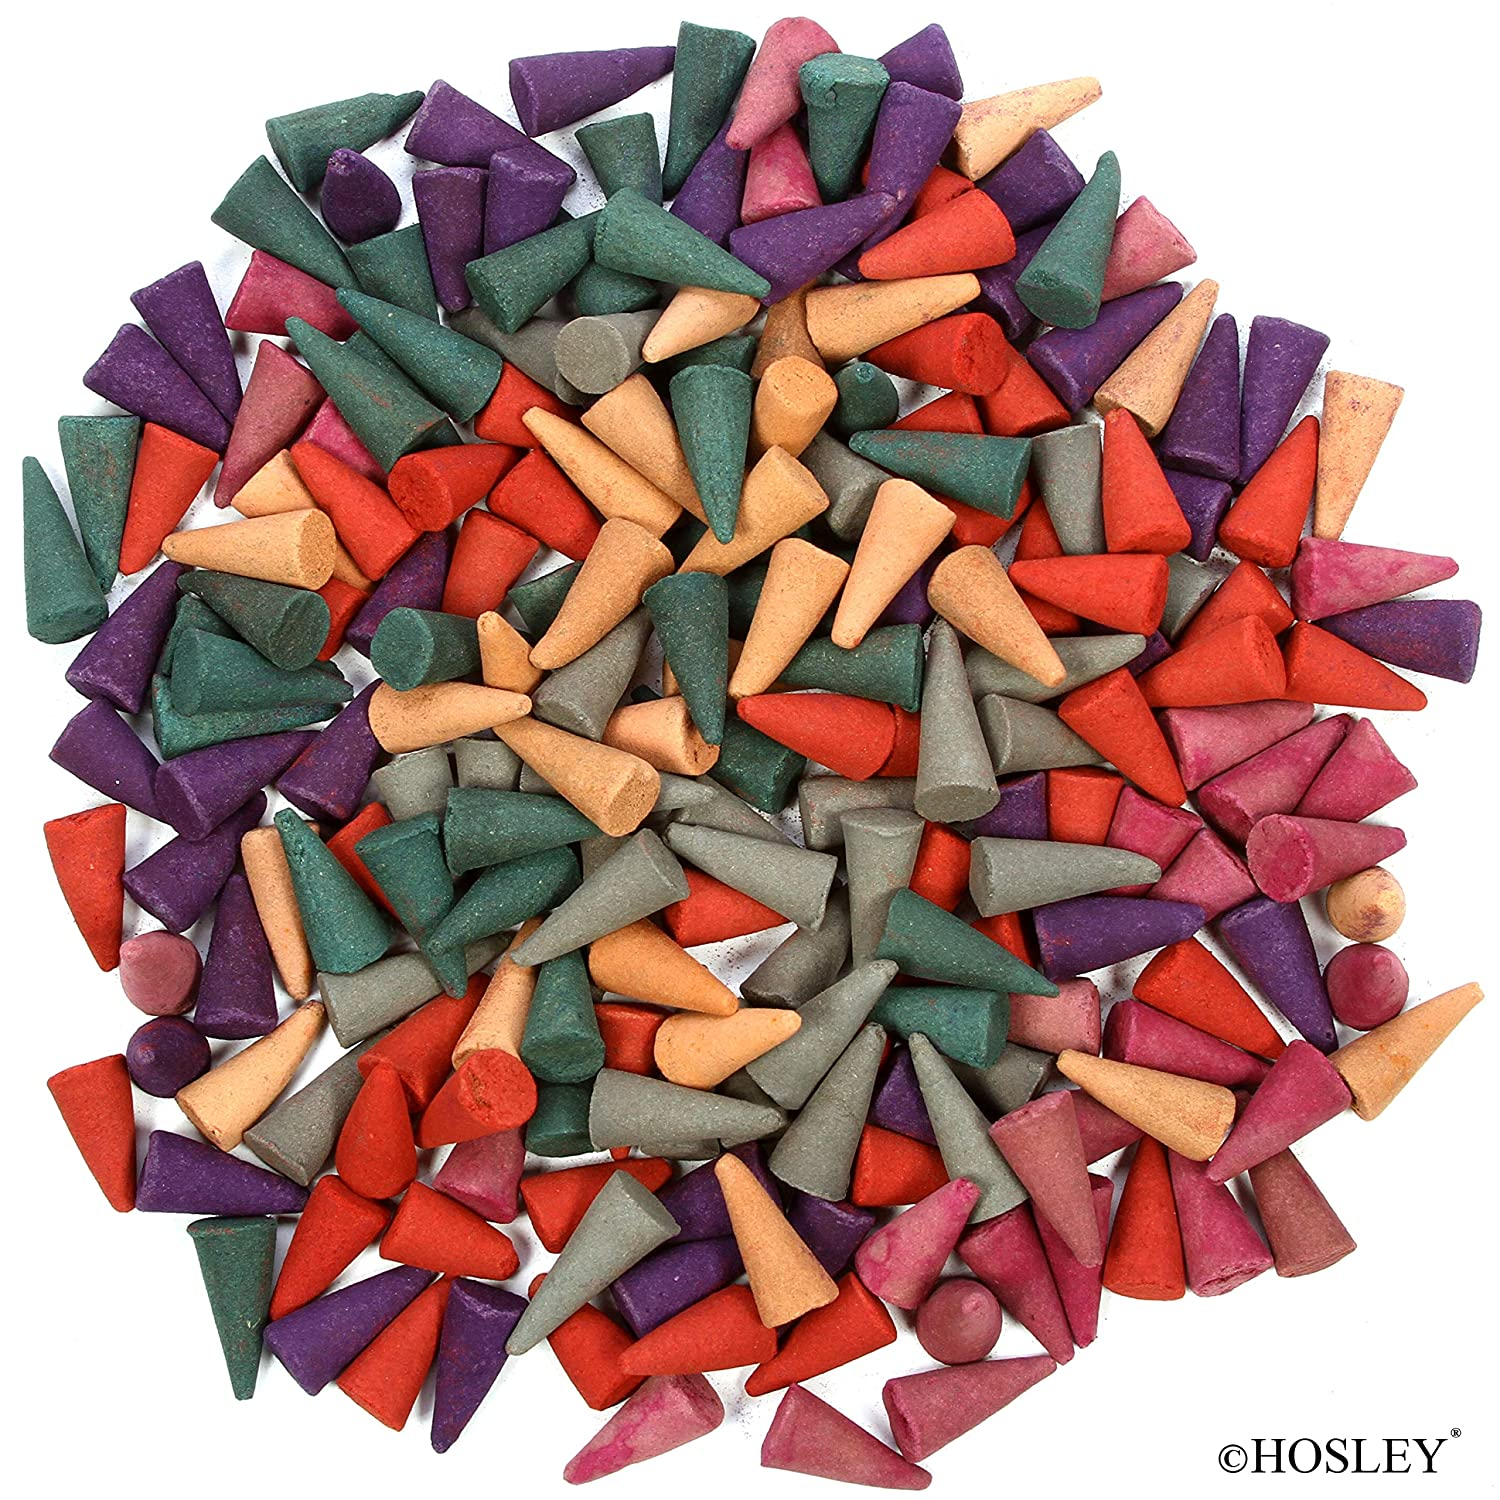 Hosley 90 Pack Assorted Incense Cones. 30 Cones of Each Like Dragons Blood Full Moon and 1 Additional Random Grab Bag Fragrance. Ideal for Spa Meditation Aromatherapy.